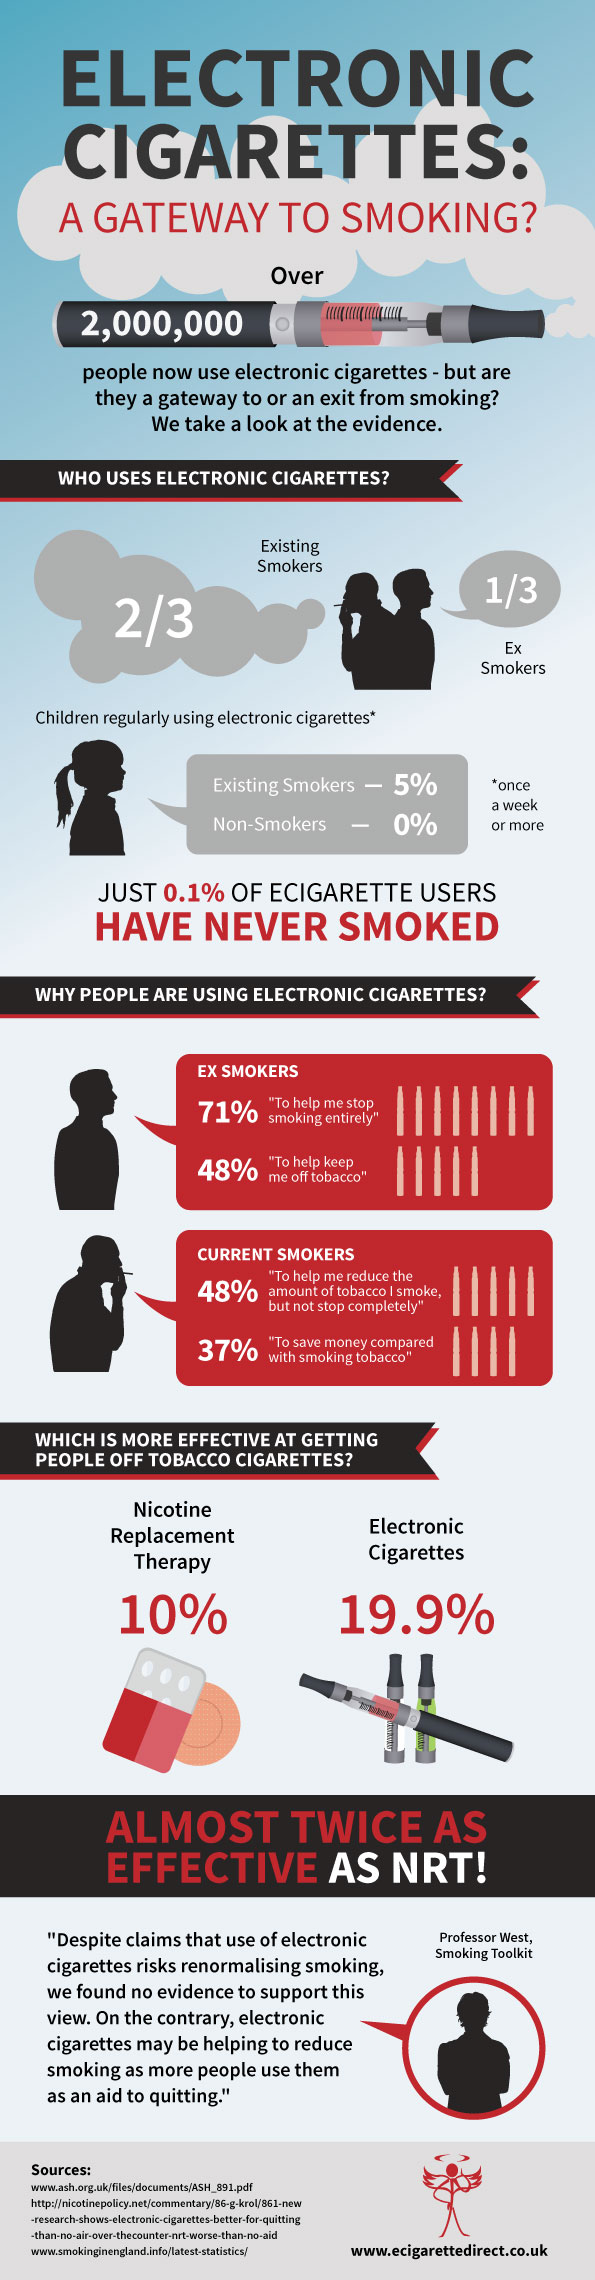 Are electronic cigarettes a gateway to cmoking?